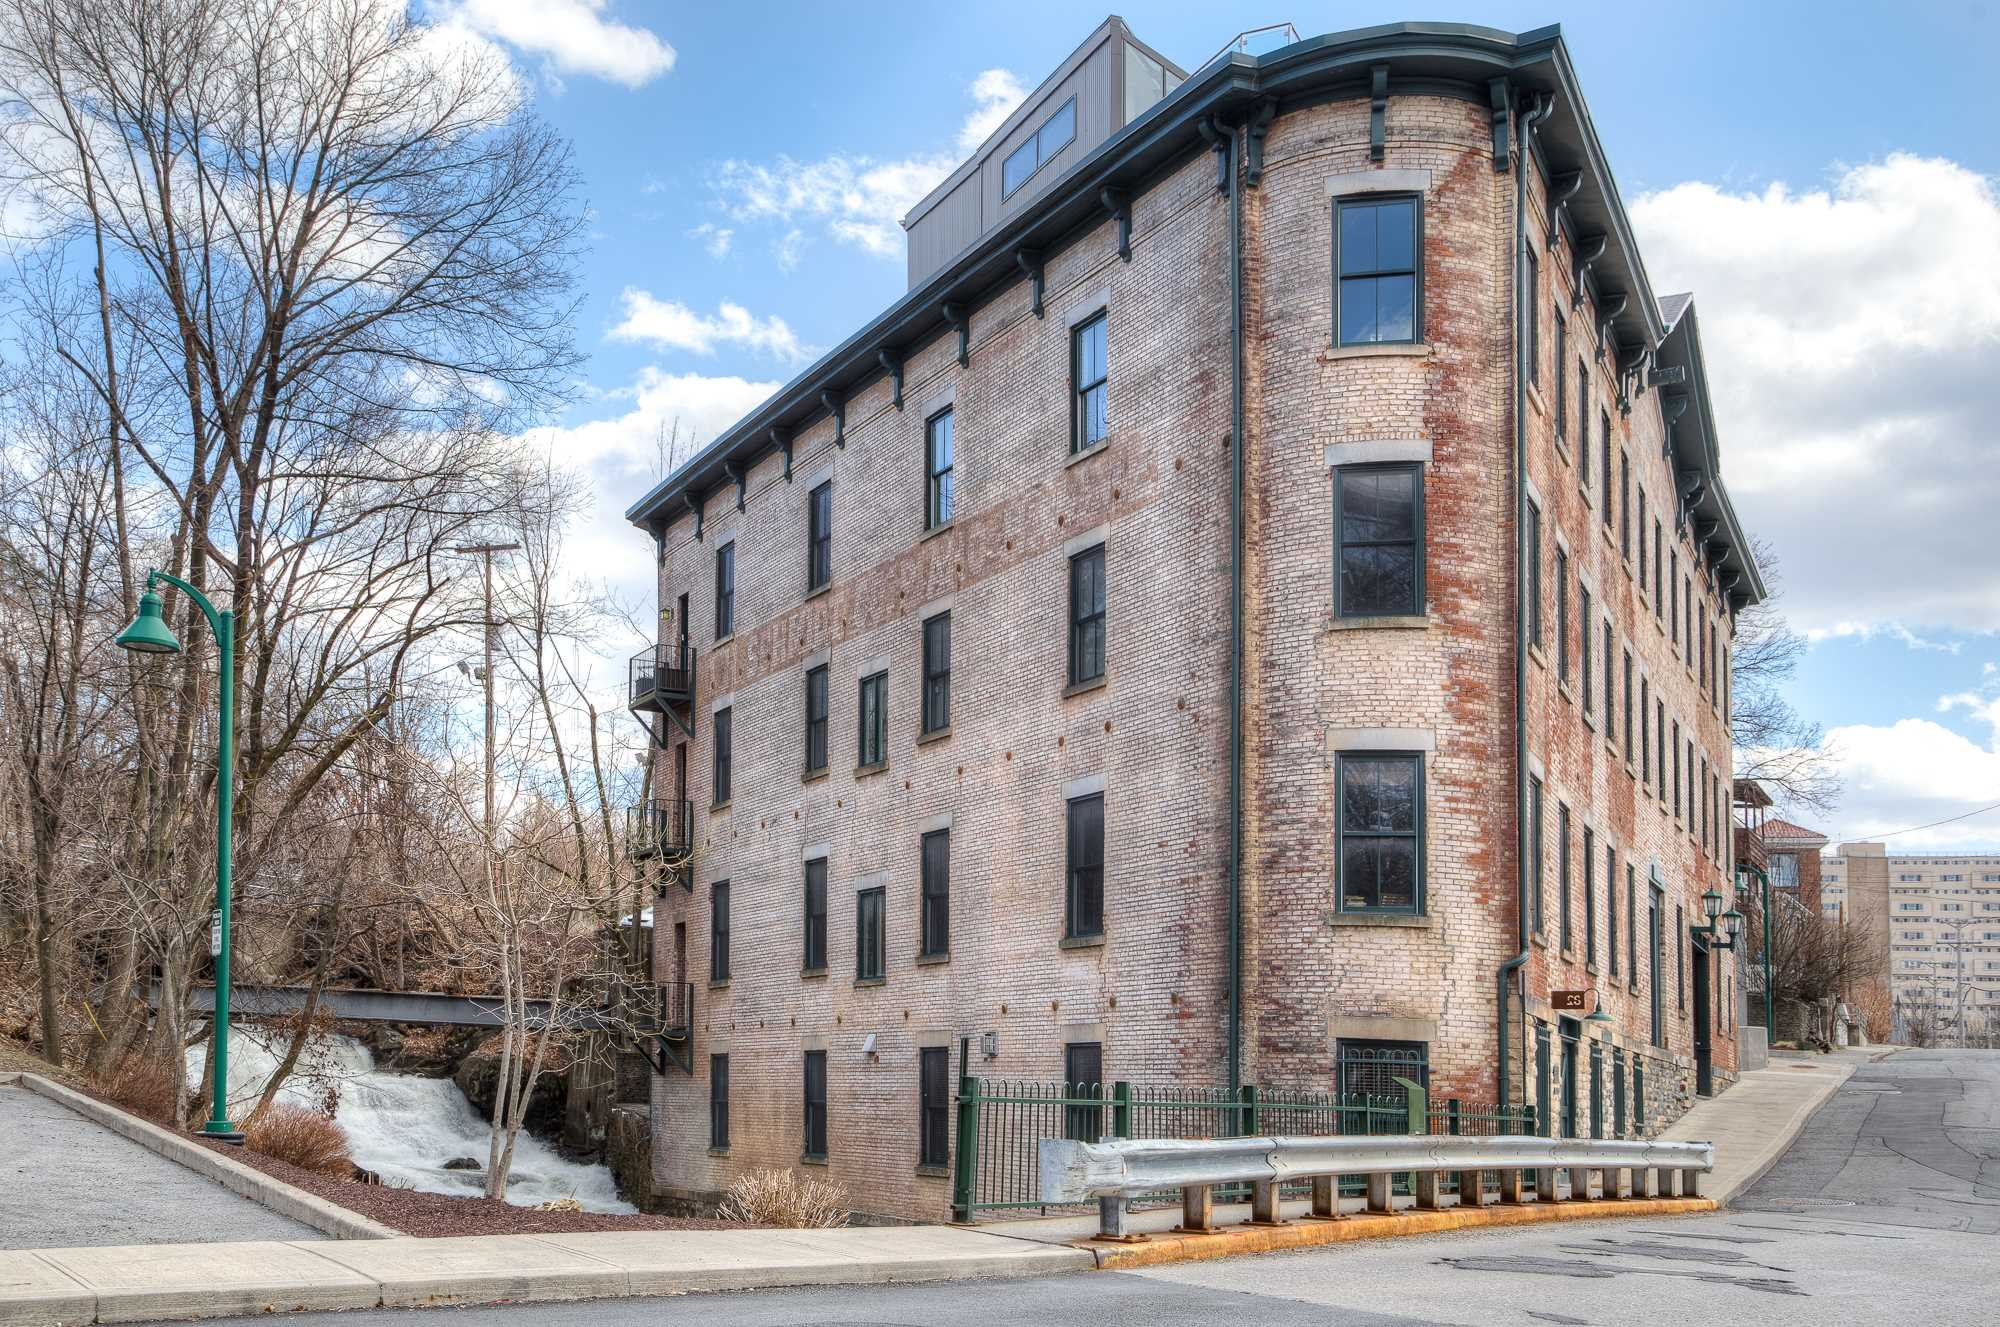 Additional photo for property listing at 80 WATER Street 80 WATER Street Poughkeepsie, New York 12601 United States